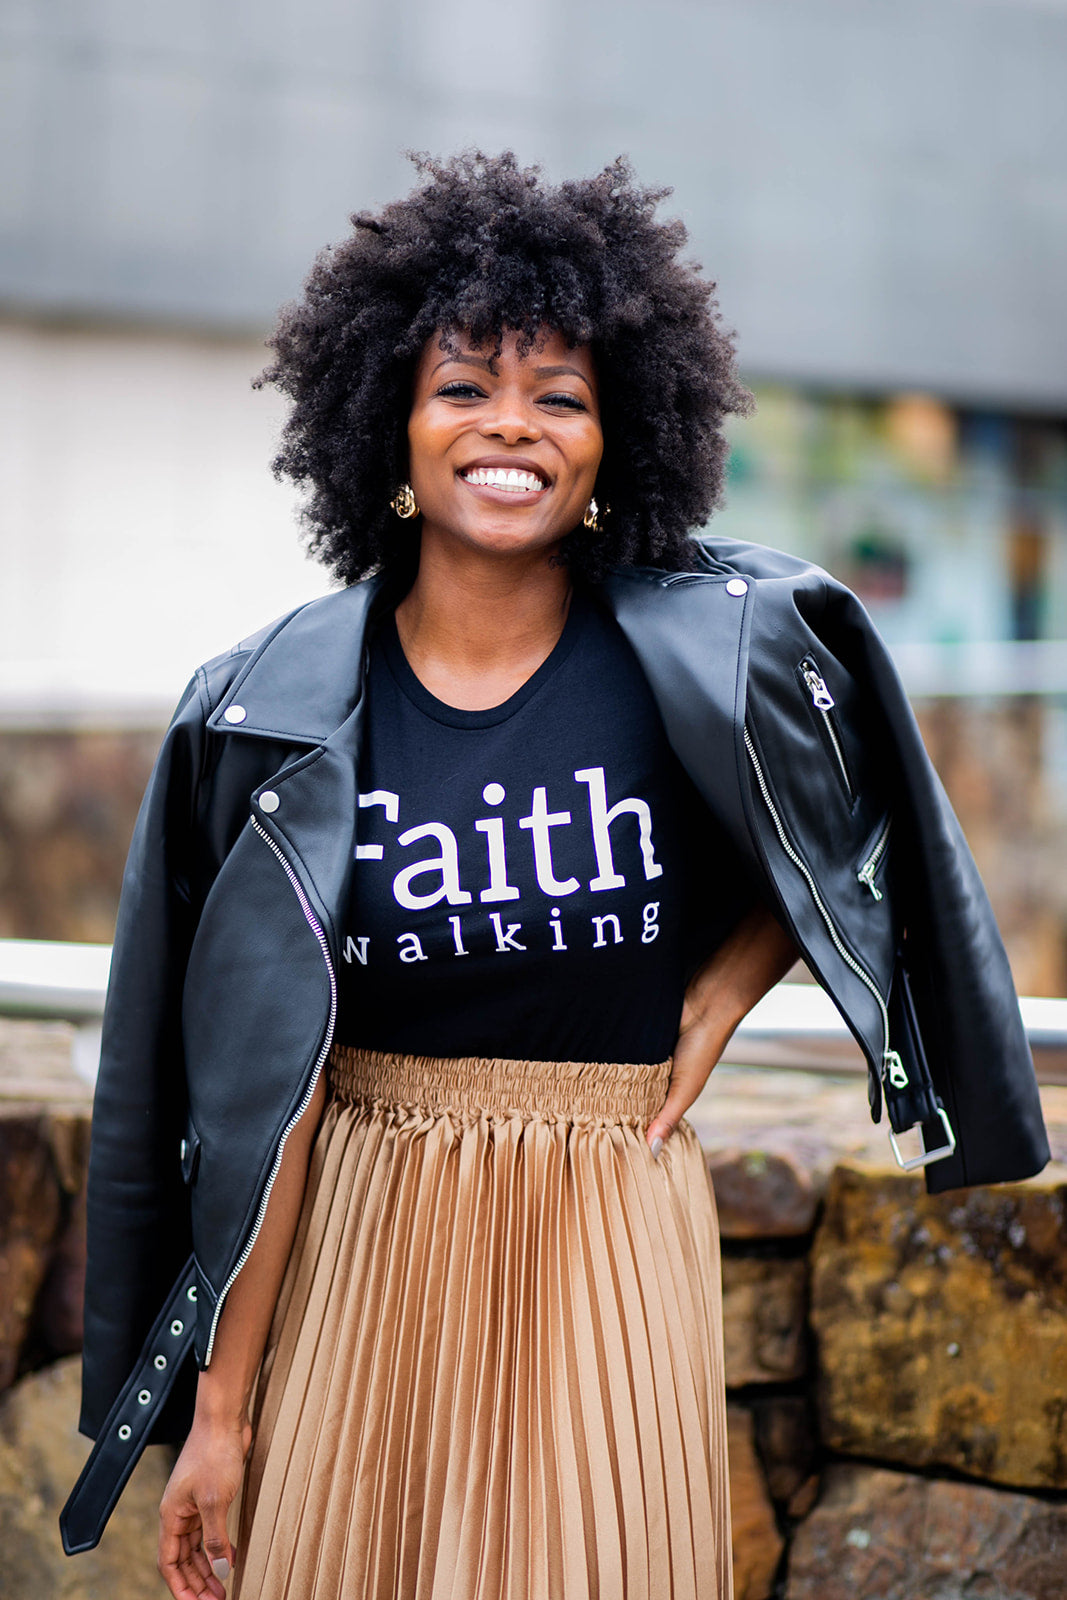 'FAITH Walking' Tee (Women)